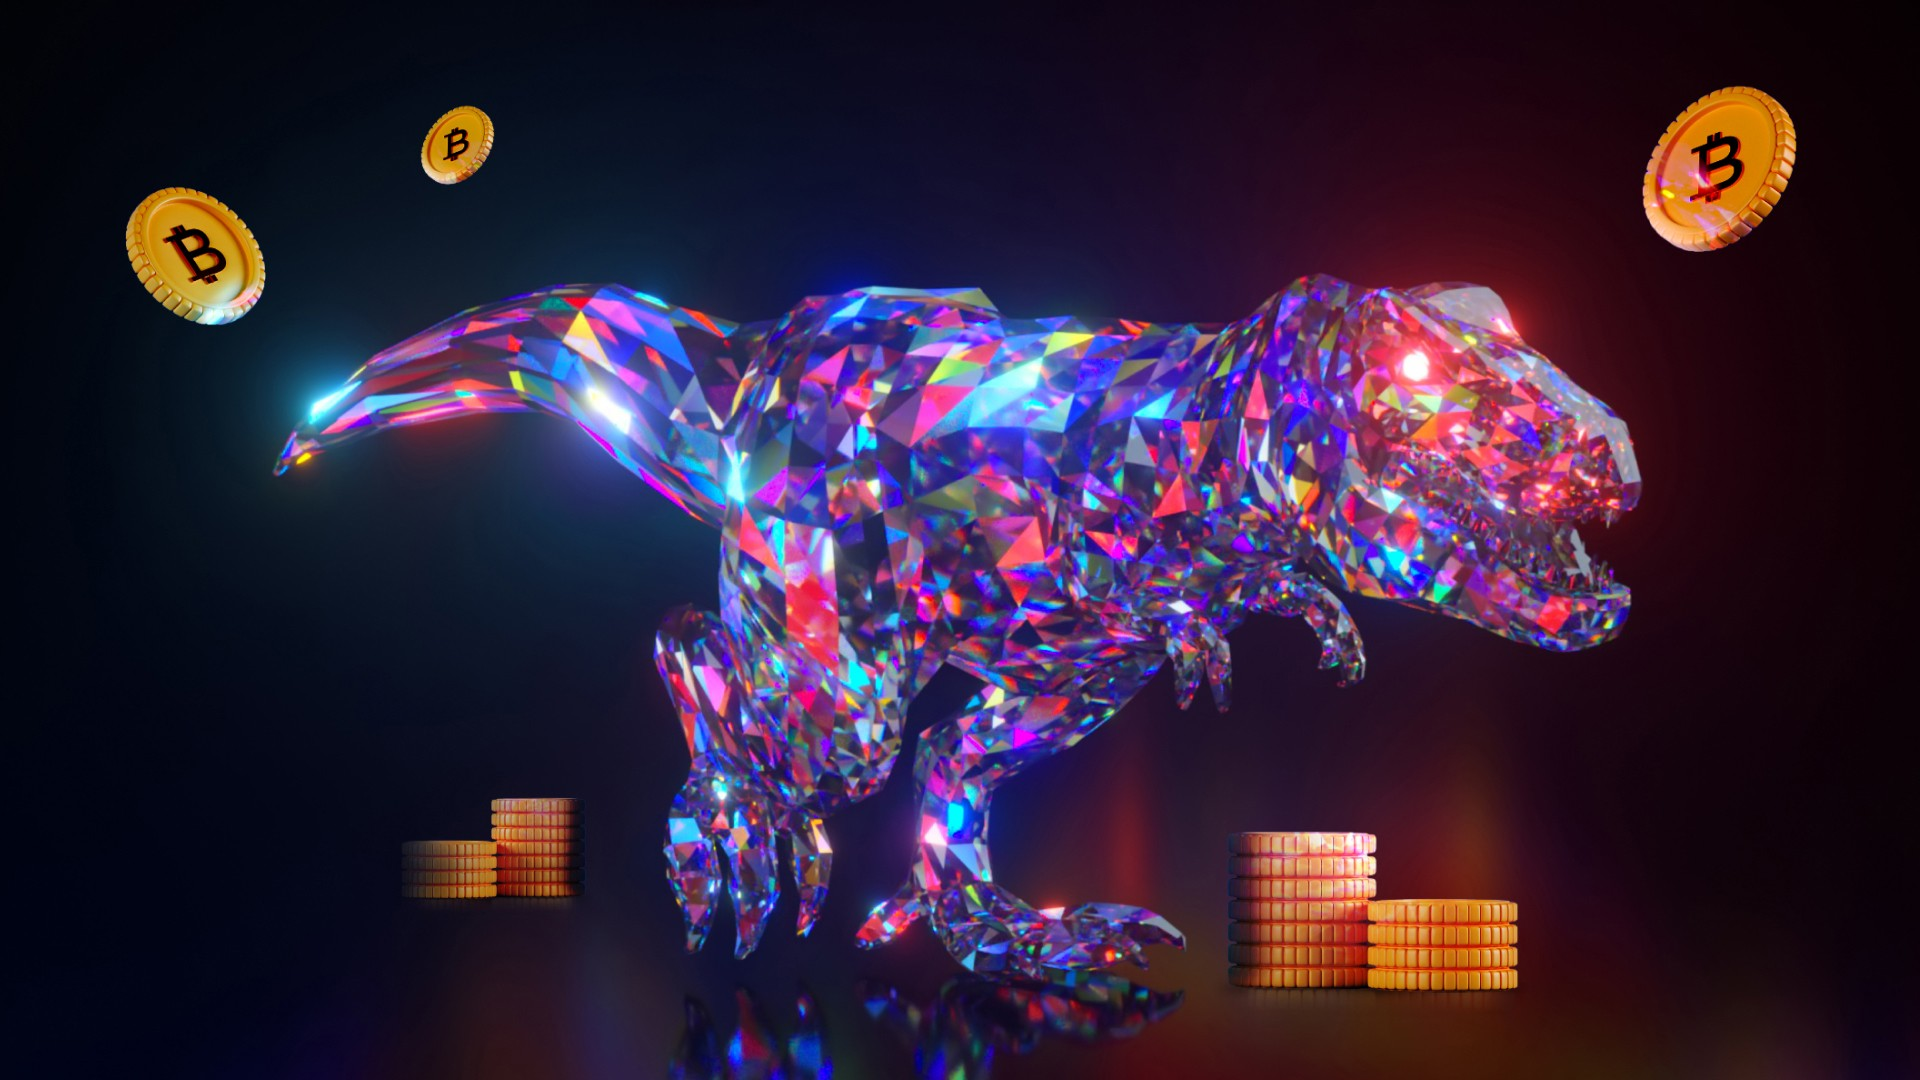 Where to Buy NFT Art? 12 Best Marketplaces to Buy Crypto Art